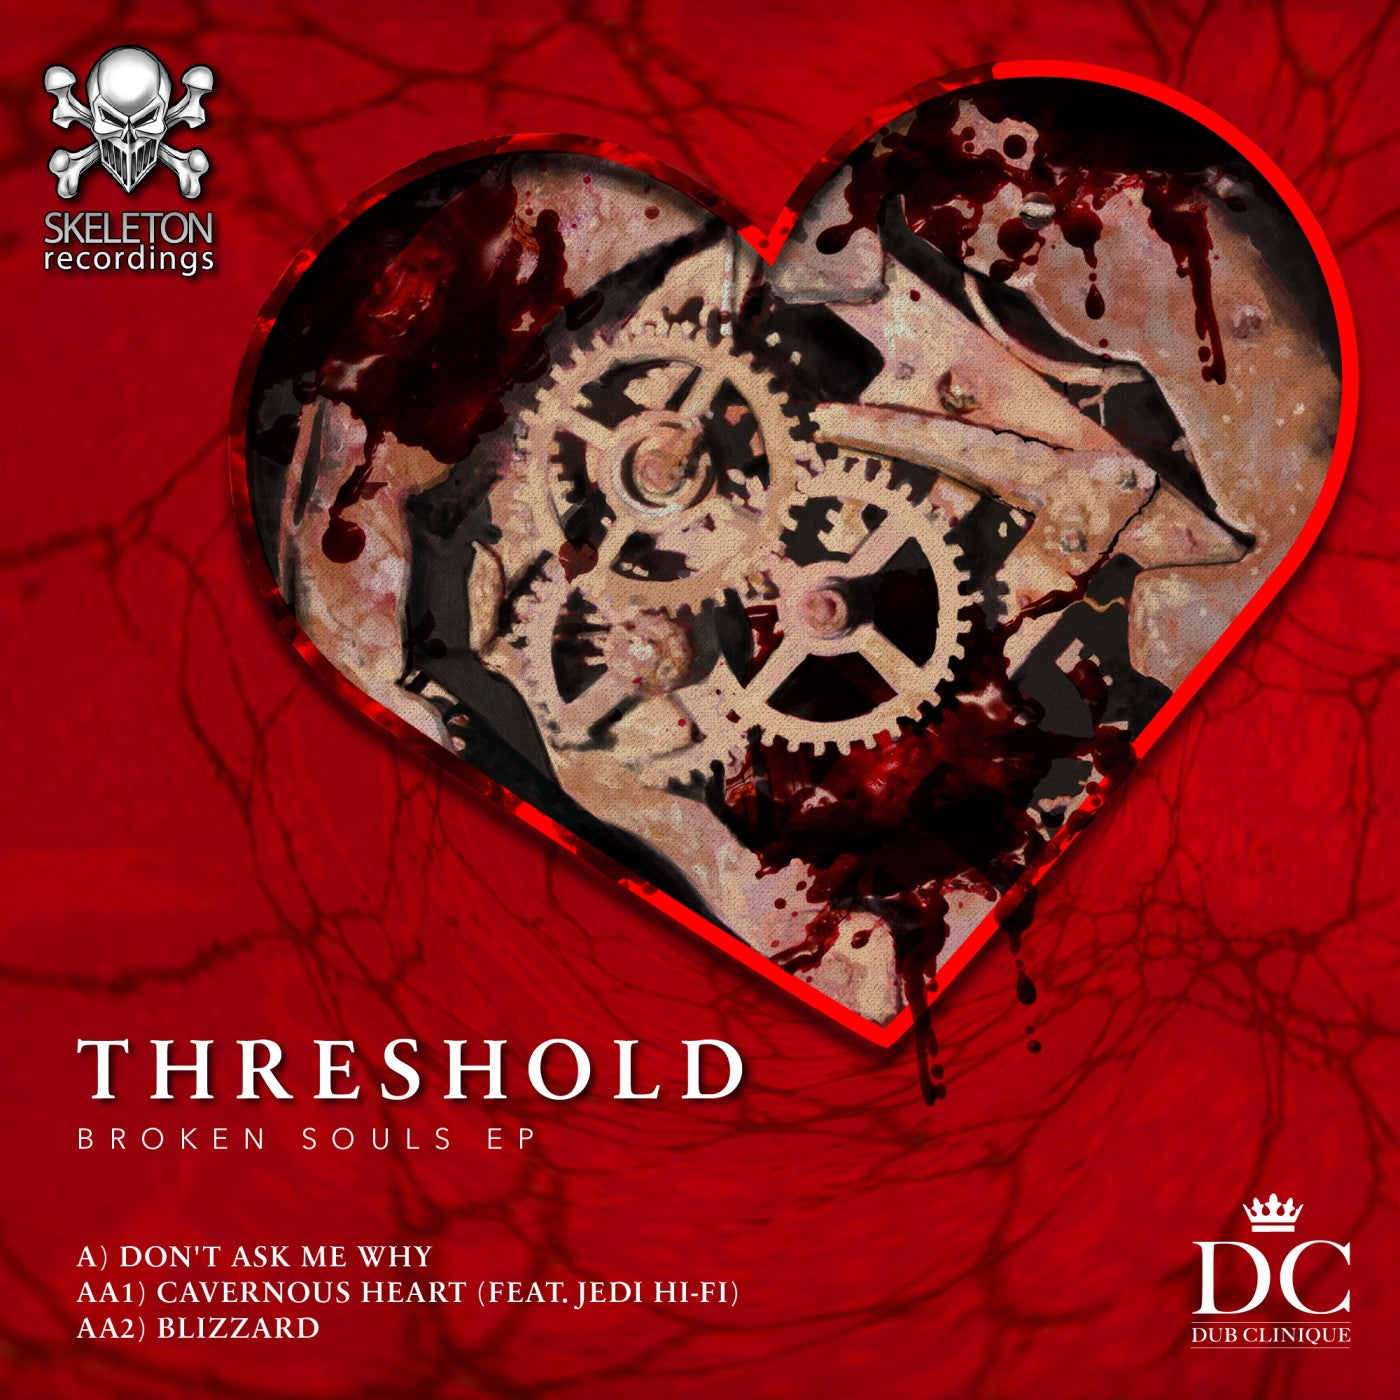 Threshold - Broken Souls EP , Vinyl - Skeleton Recordings, Unearthed Sounds